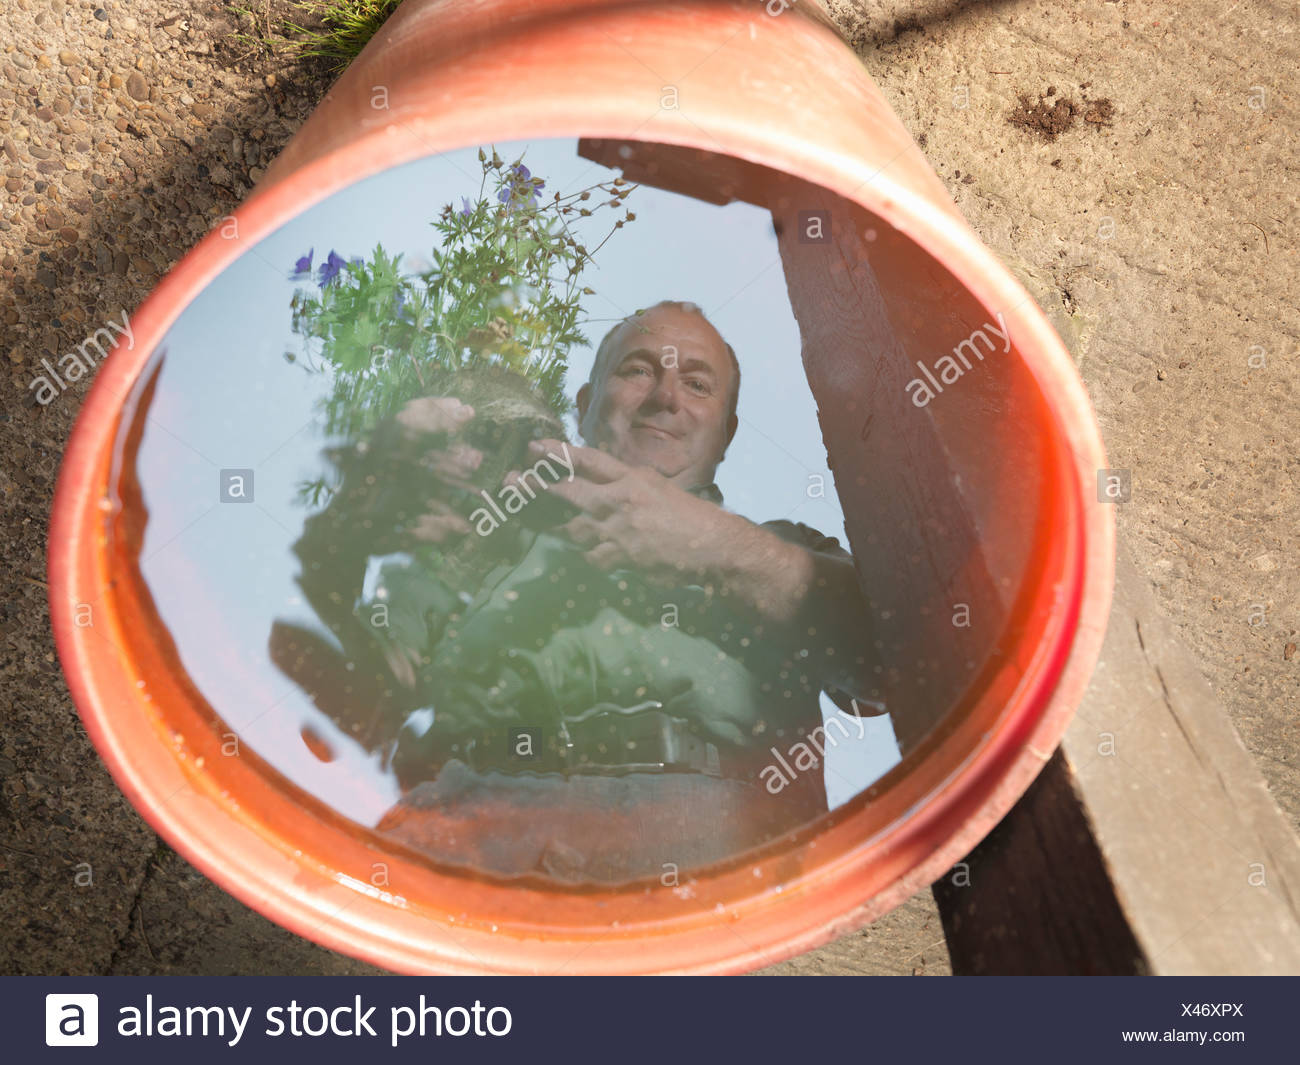 Reflection Of Gardener In Water - Stock Image